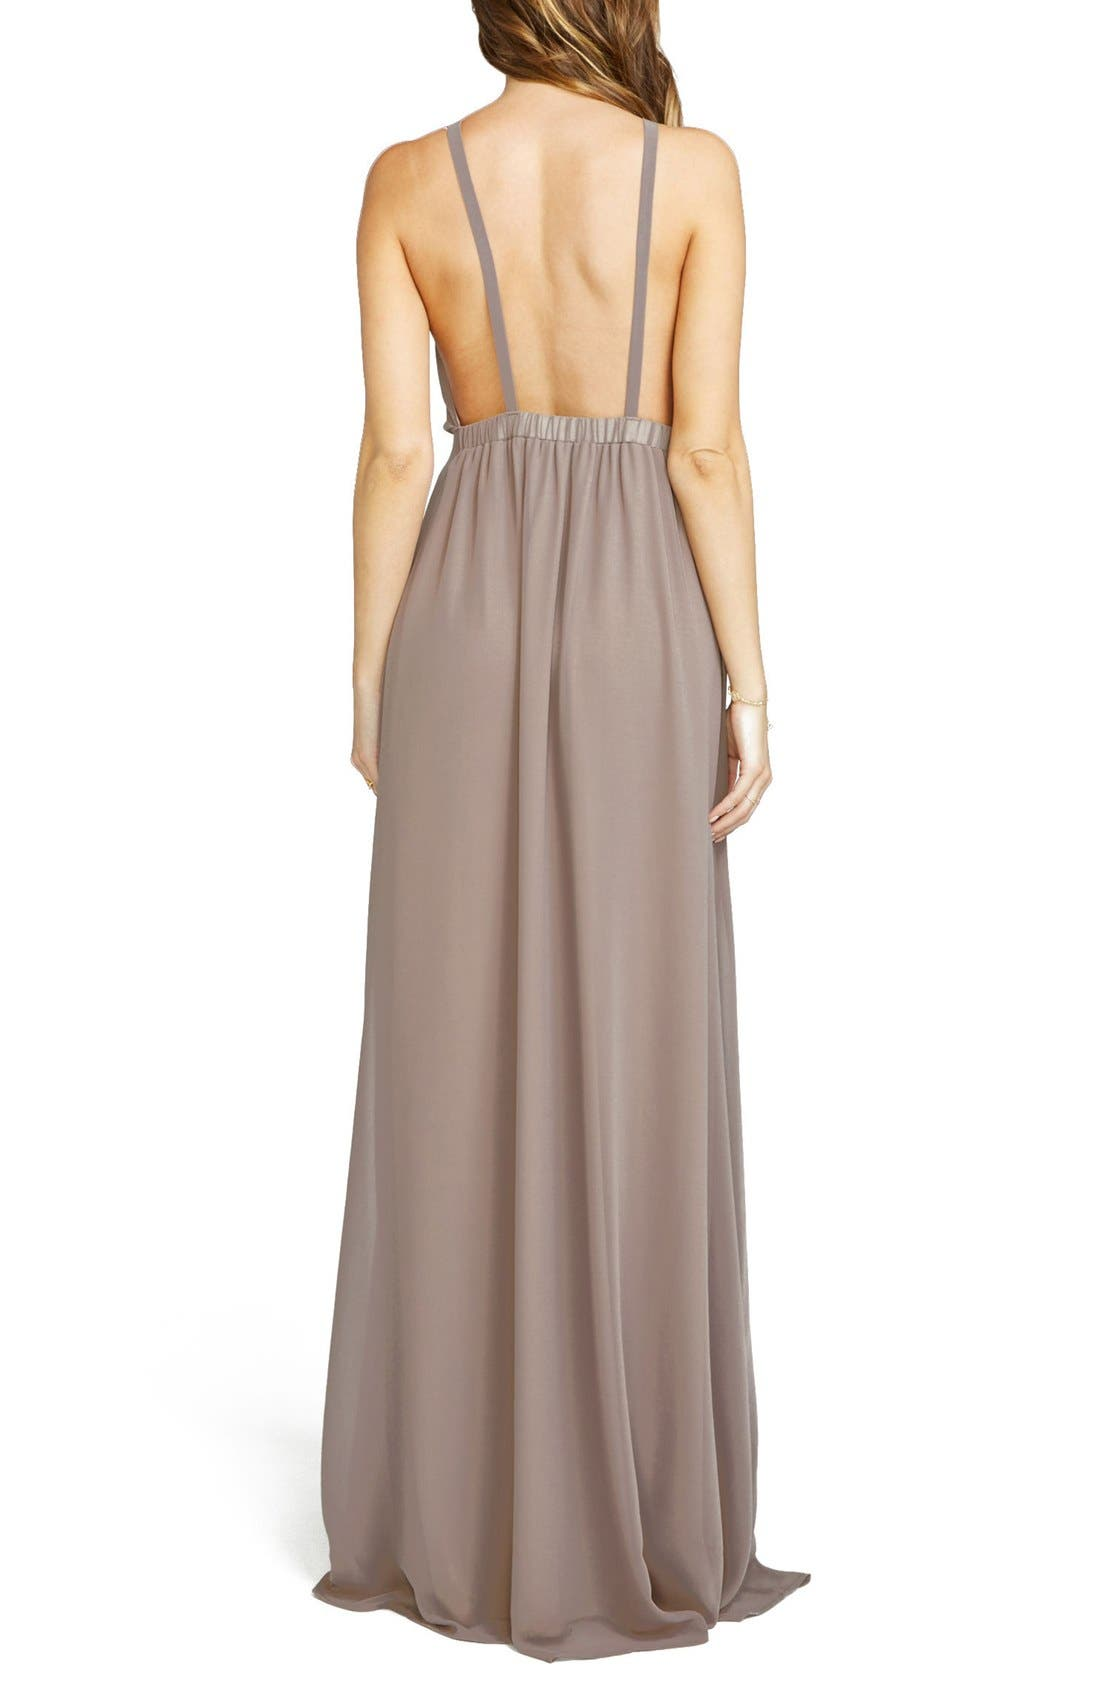 Amanda Open Back Blouson Gown,                             Alternate thumbnail 16, color,